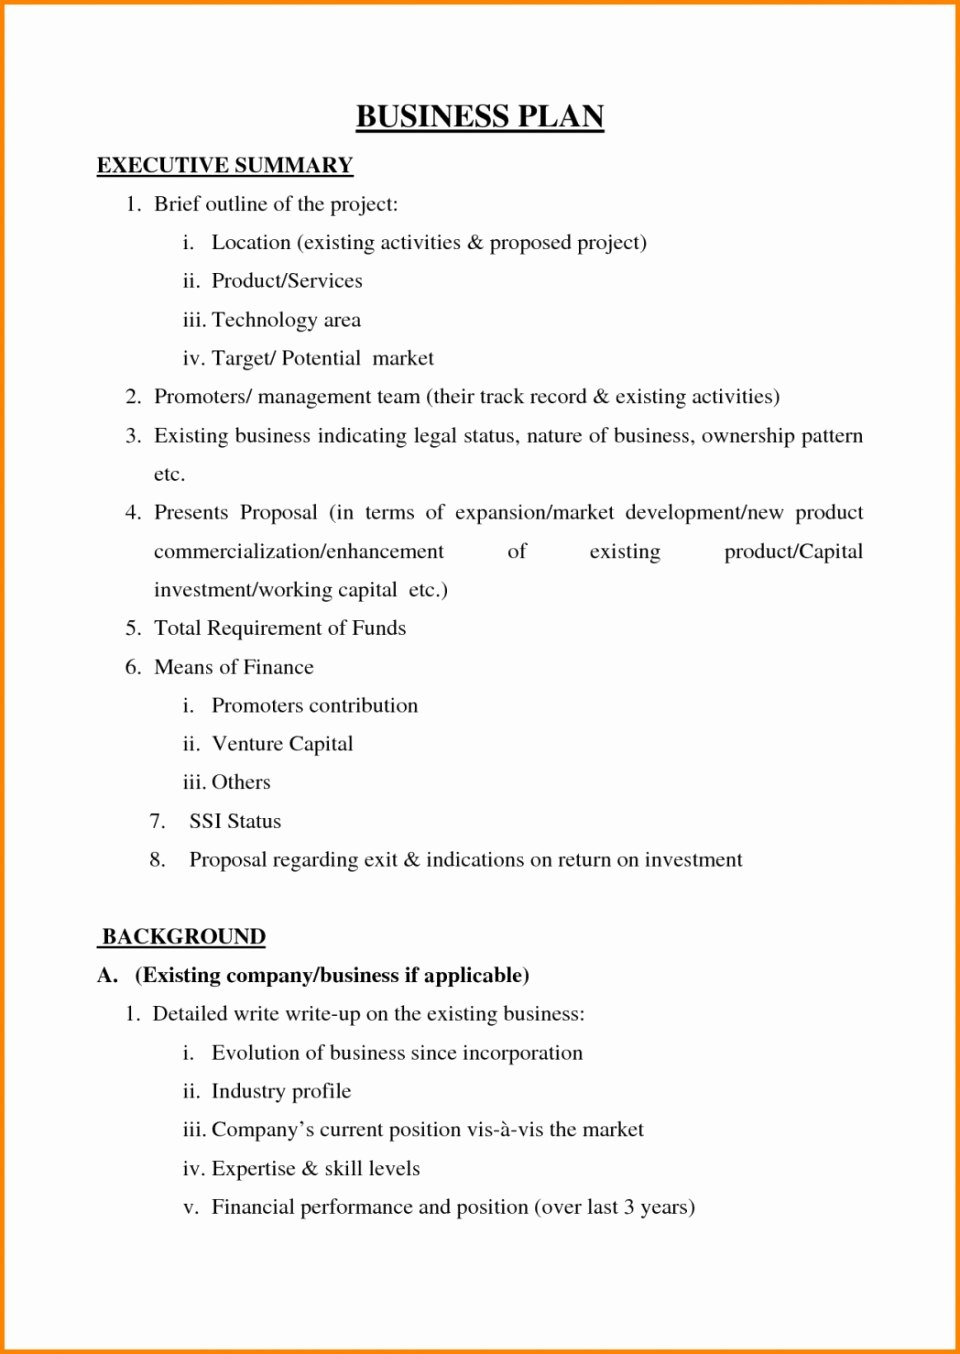 Proposal Siness Plan Template Awesome House Cleaning Services Throughout Business Plan Template For Service Company